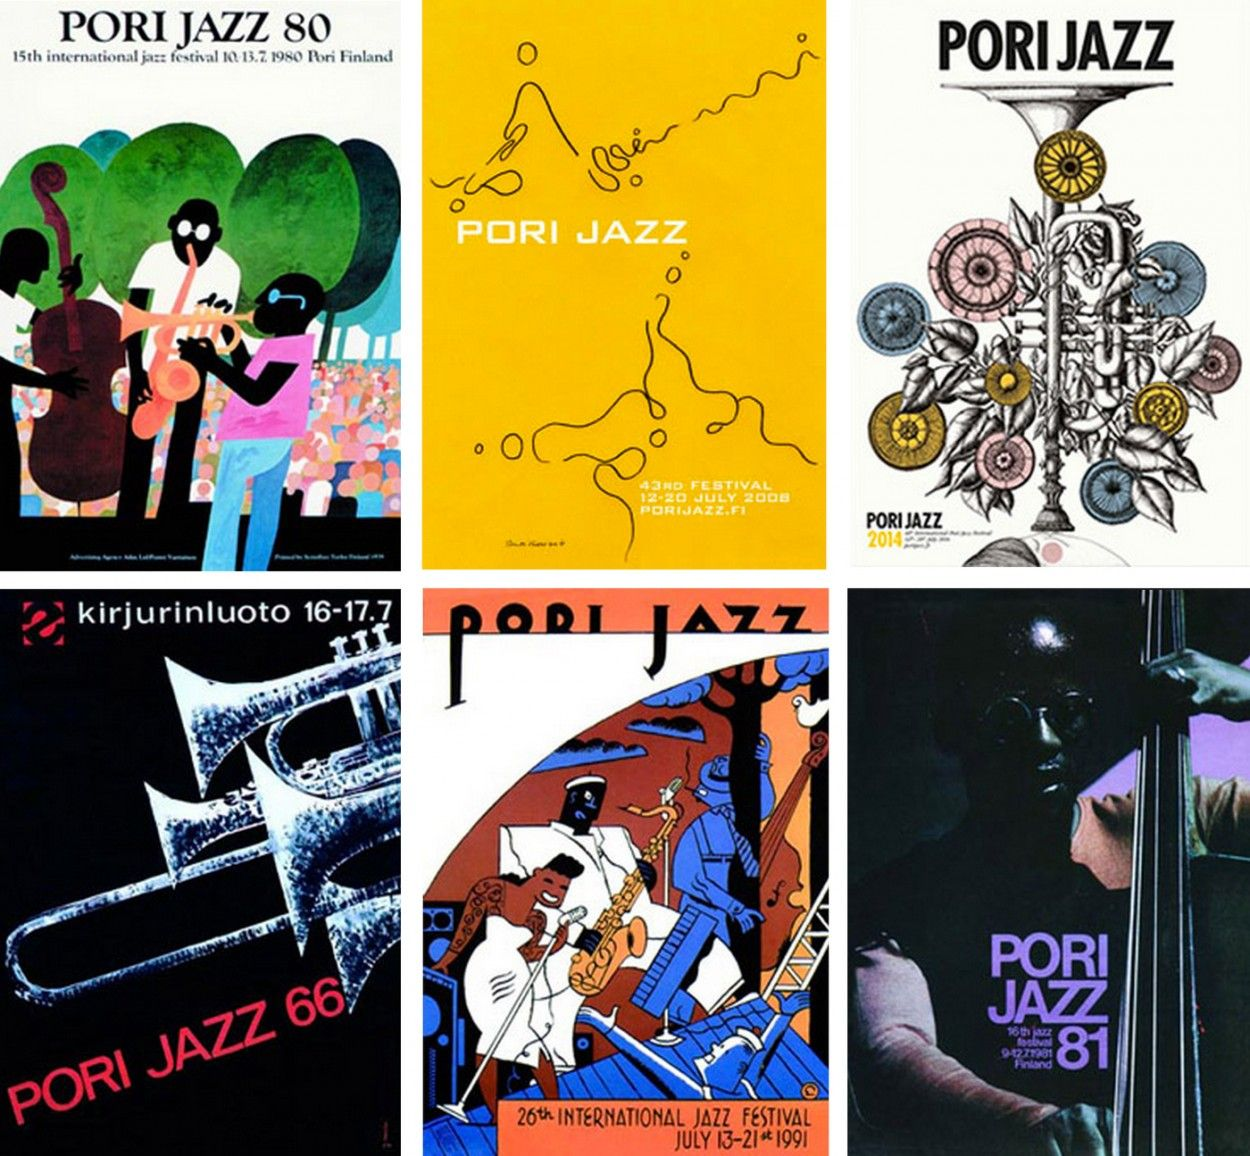 pori-jazz-julisteet3.jpg